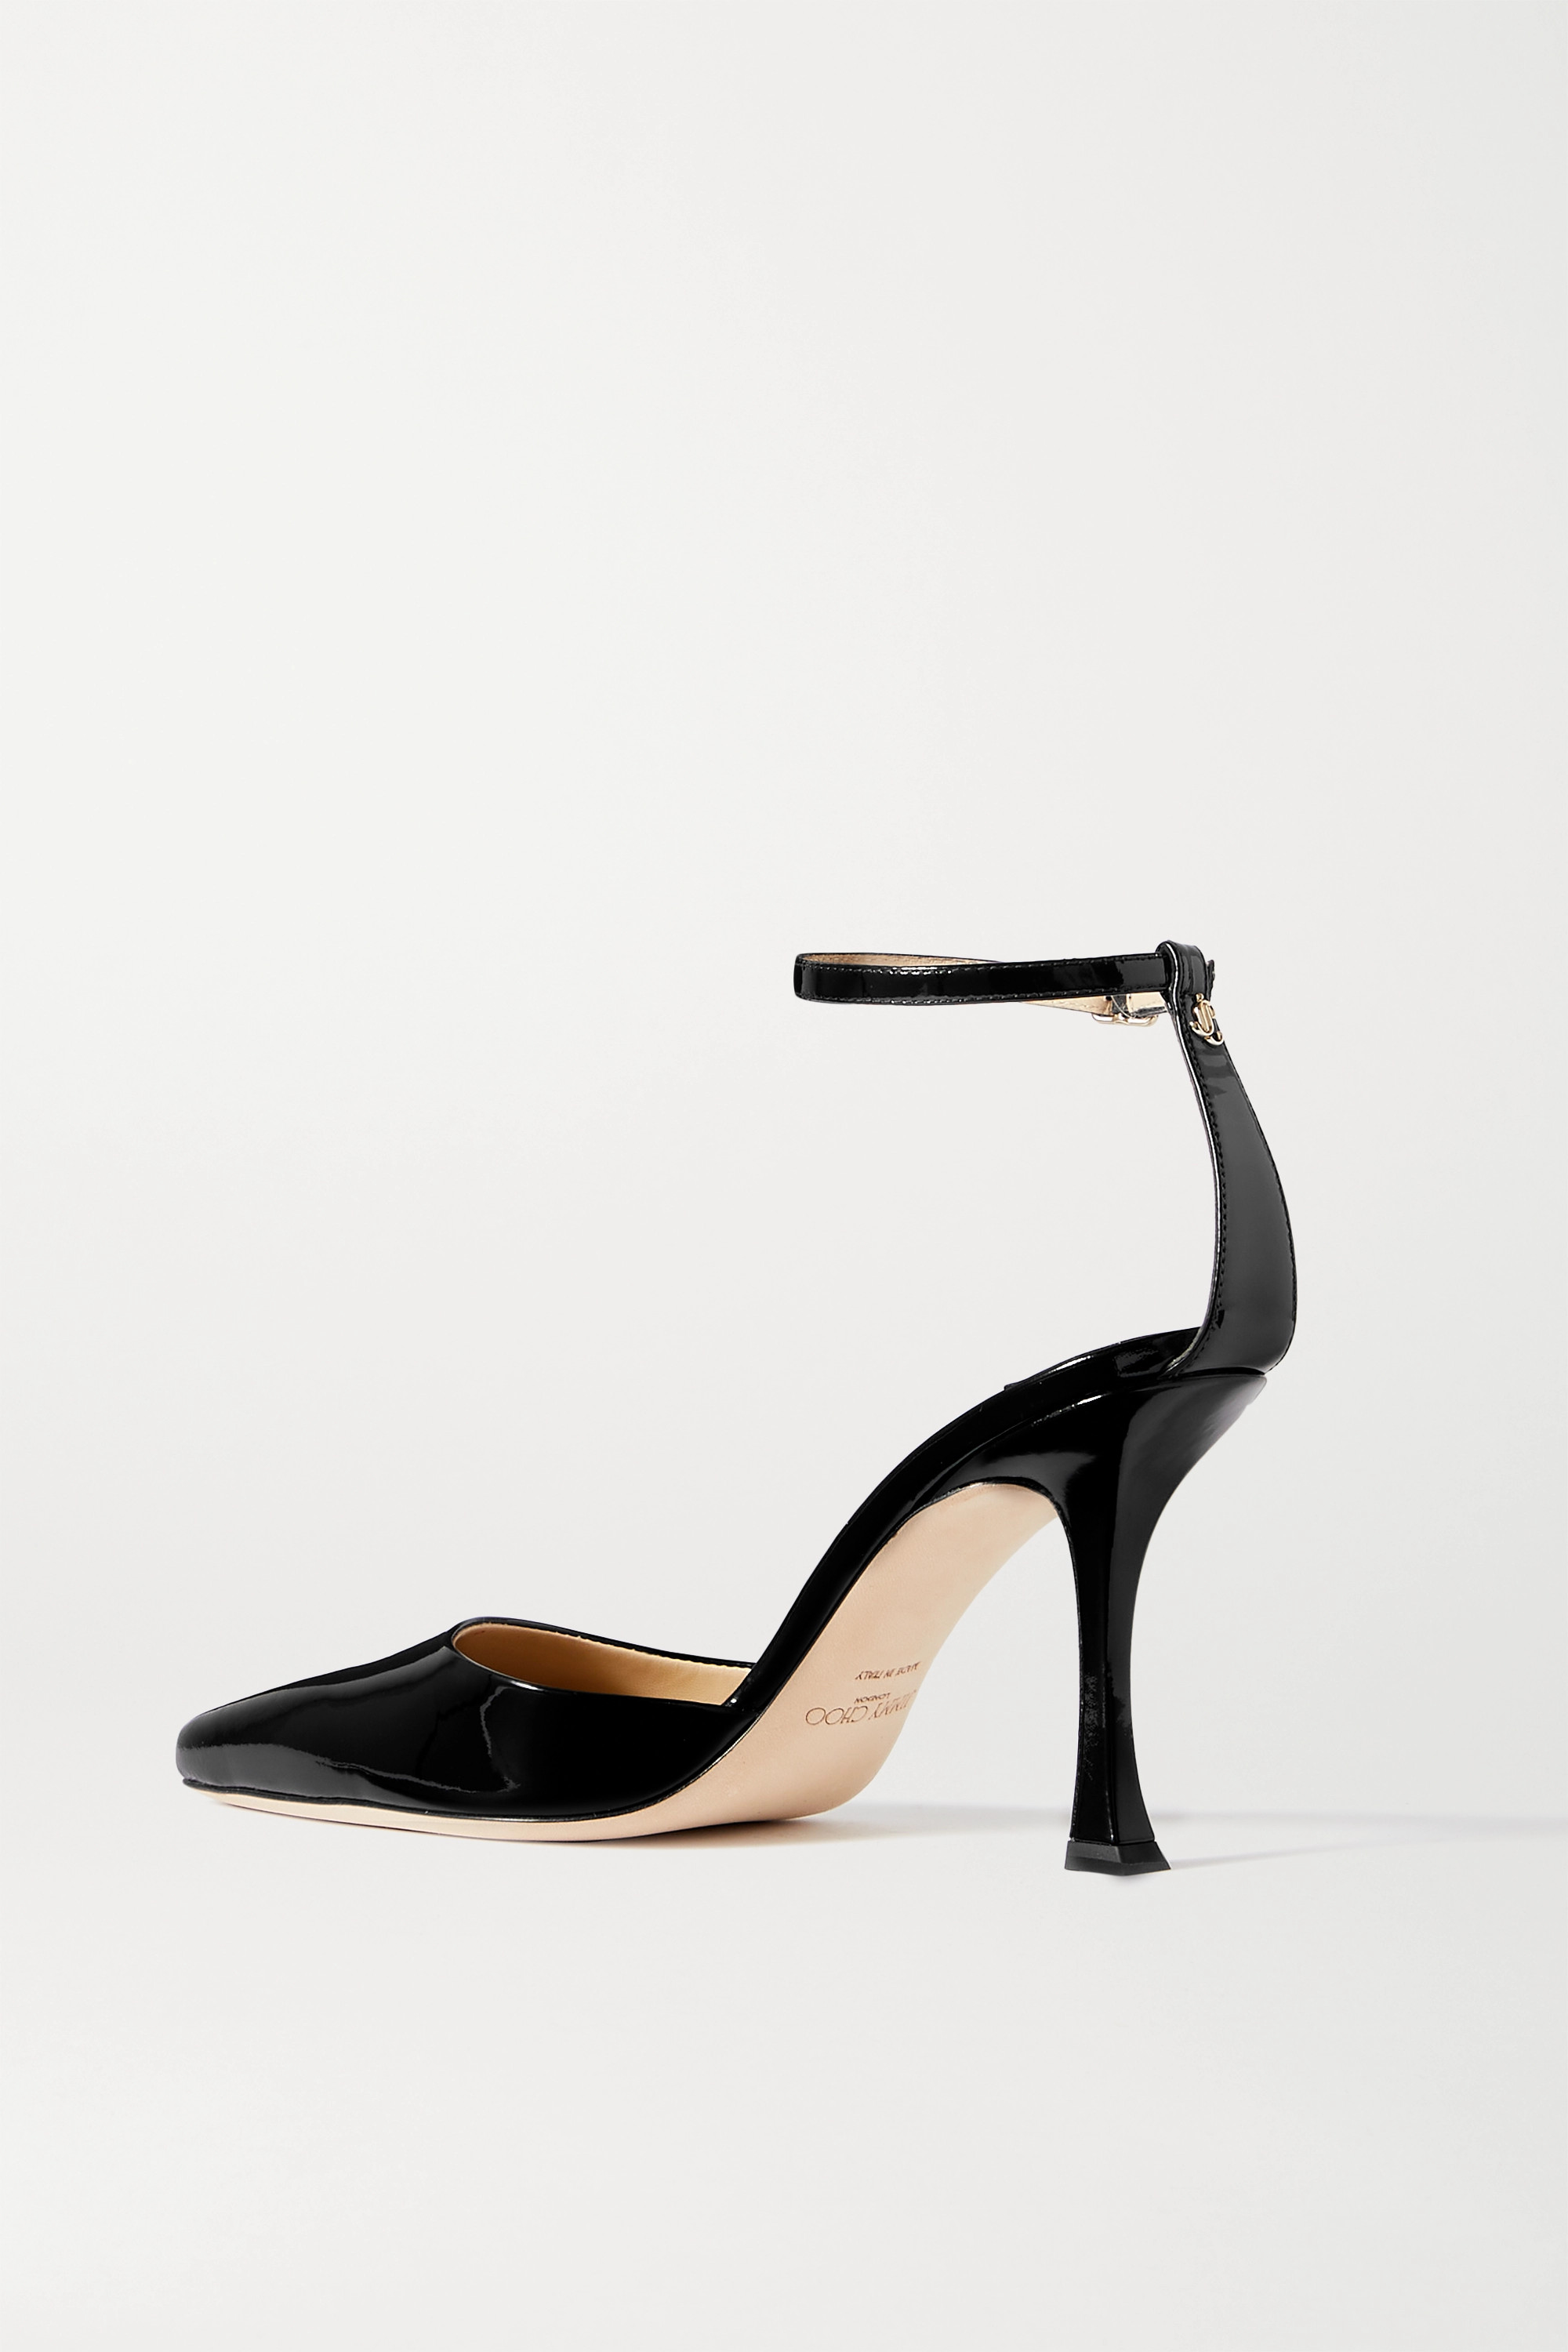 Jimmy Choo Mair 90 patent-leather pumps